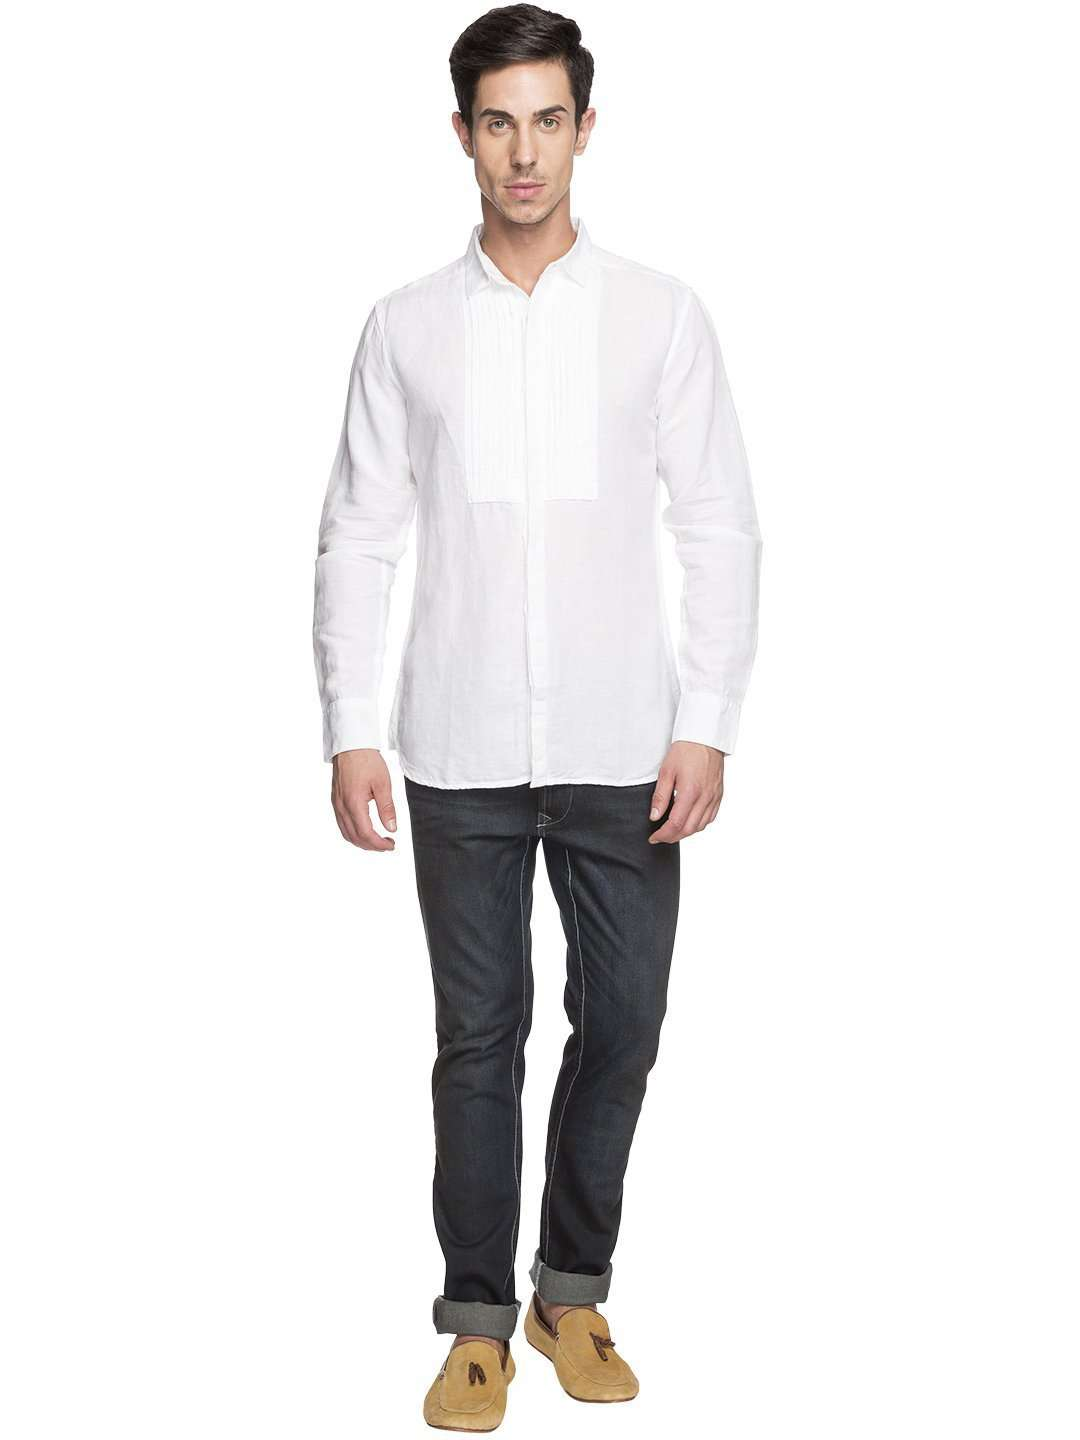 340a1815045 Slim Fit White Linen Shirt Mens – EDGE Engineering and Consulting ...